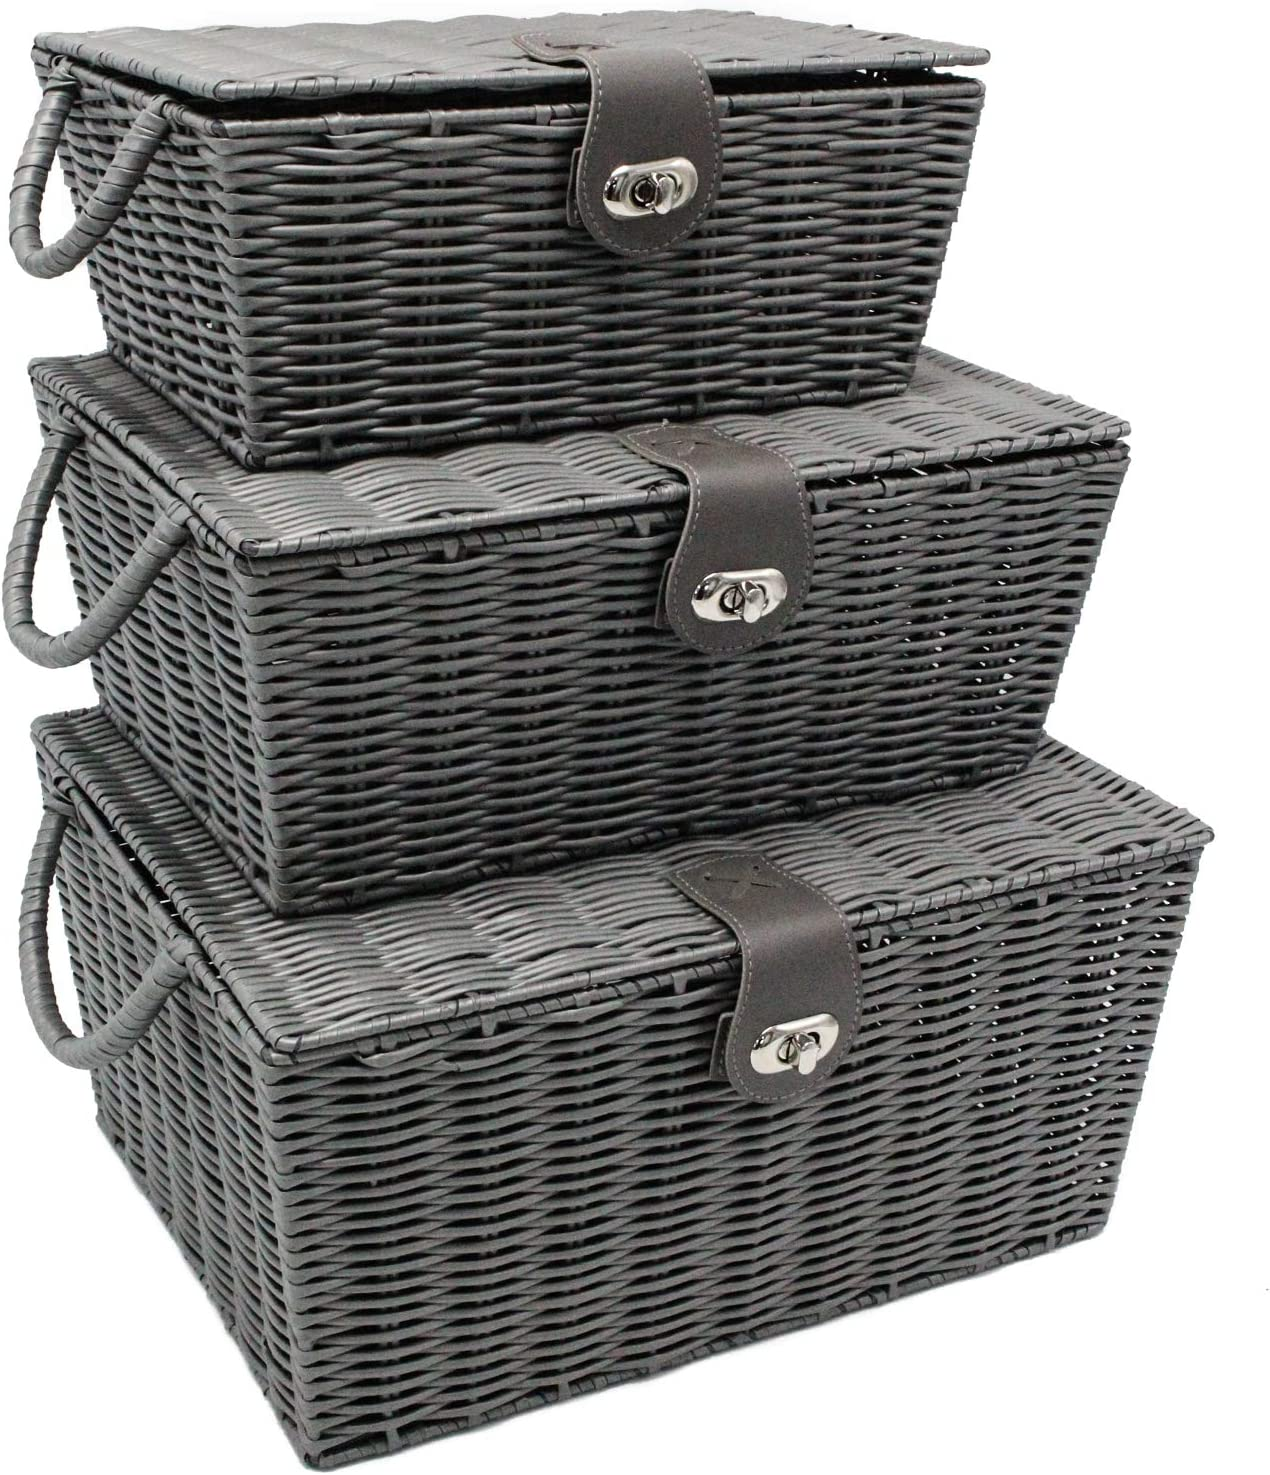 OLLVIA Wicker Storage Baskets with Lid for Organizing, 3 Foldable Storage Bins with Lid for Cube Organizing, Wicker Storage Basket with Handle for Organizing Shelf Nursery Home Closet